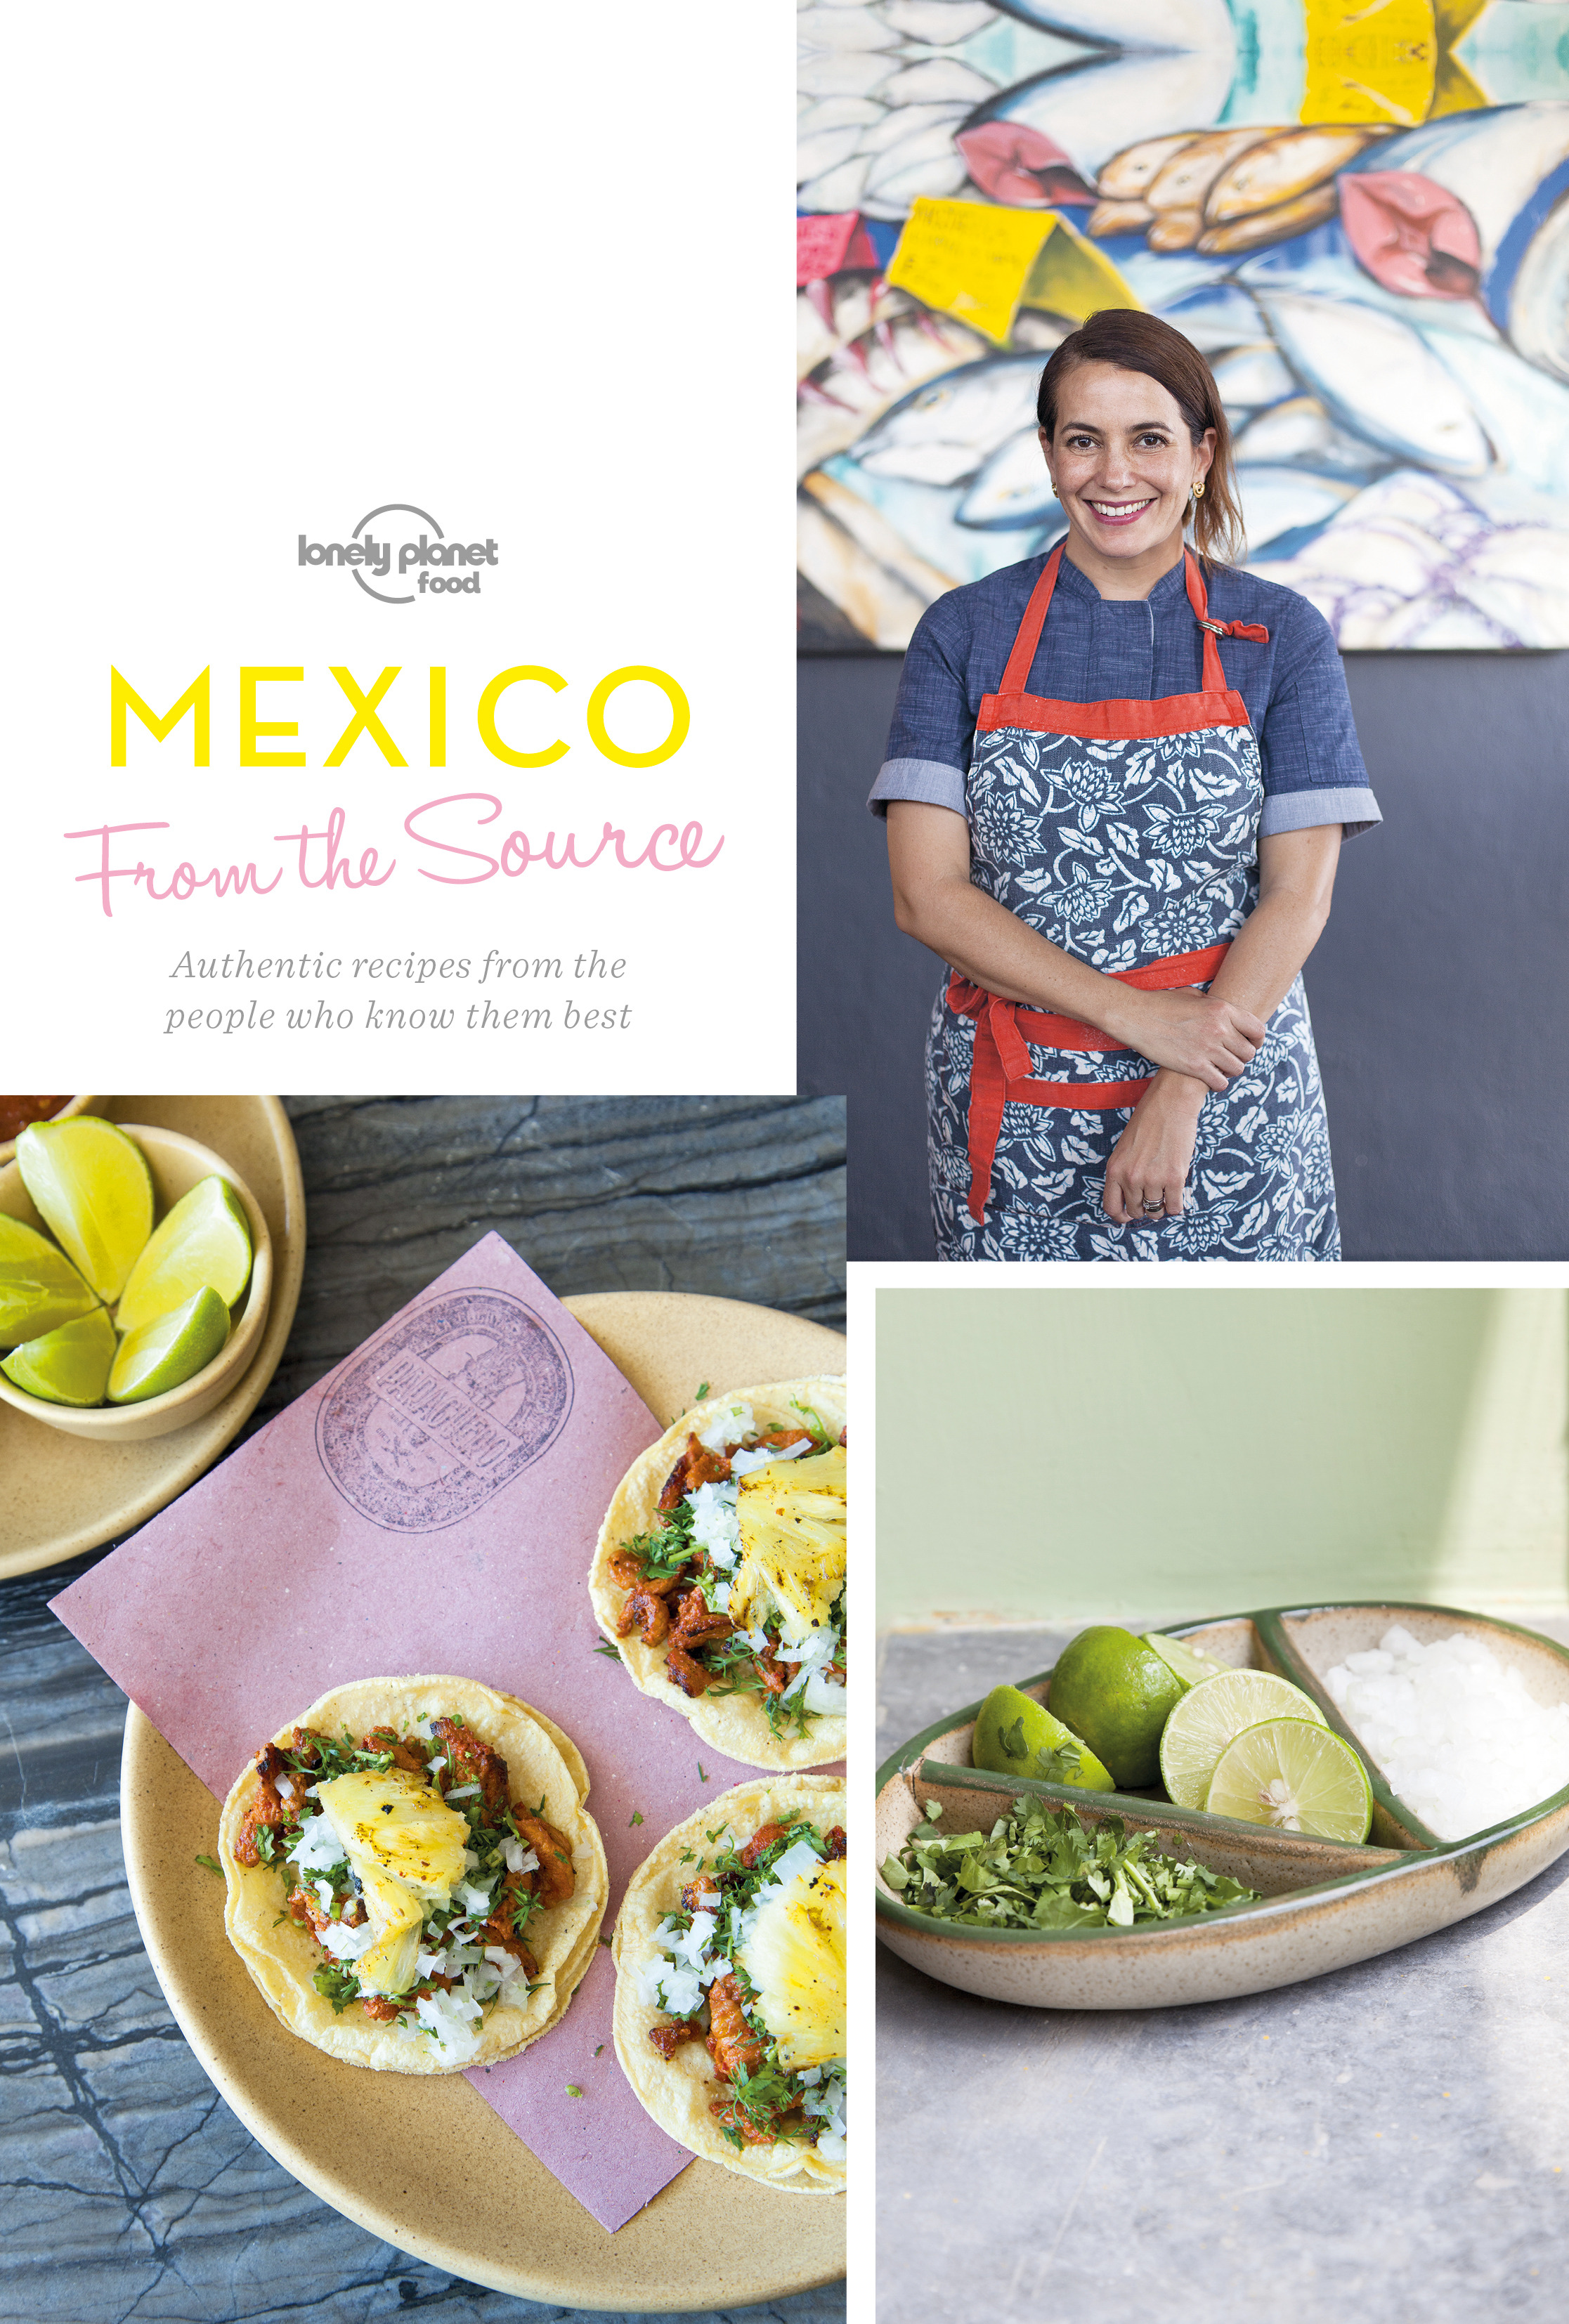 Food, Lonely Planet - From the Source - Mexico: Authentic Recipes From the People That Know Them the Best, ebook